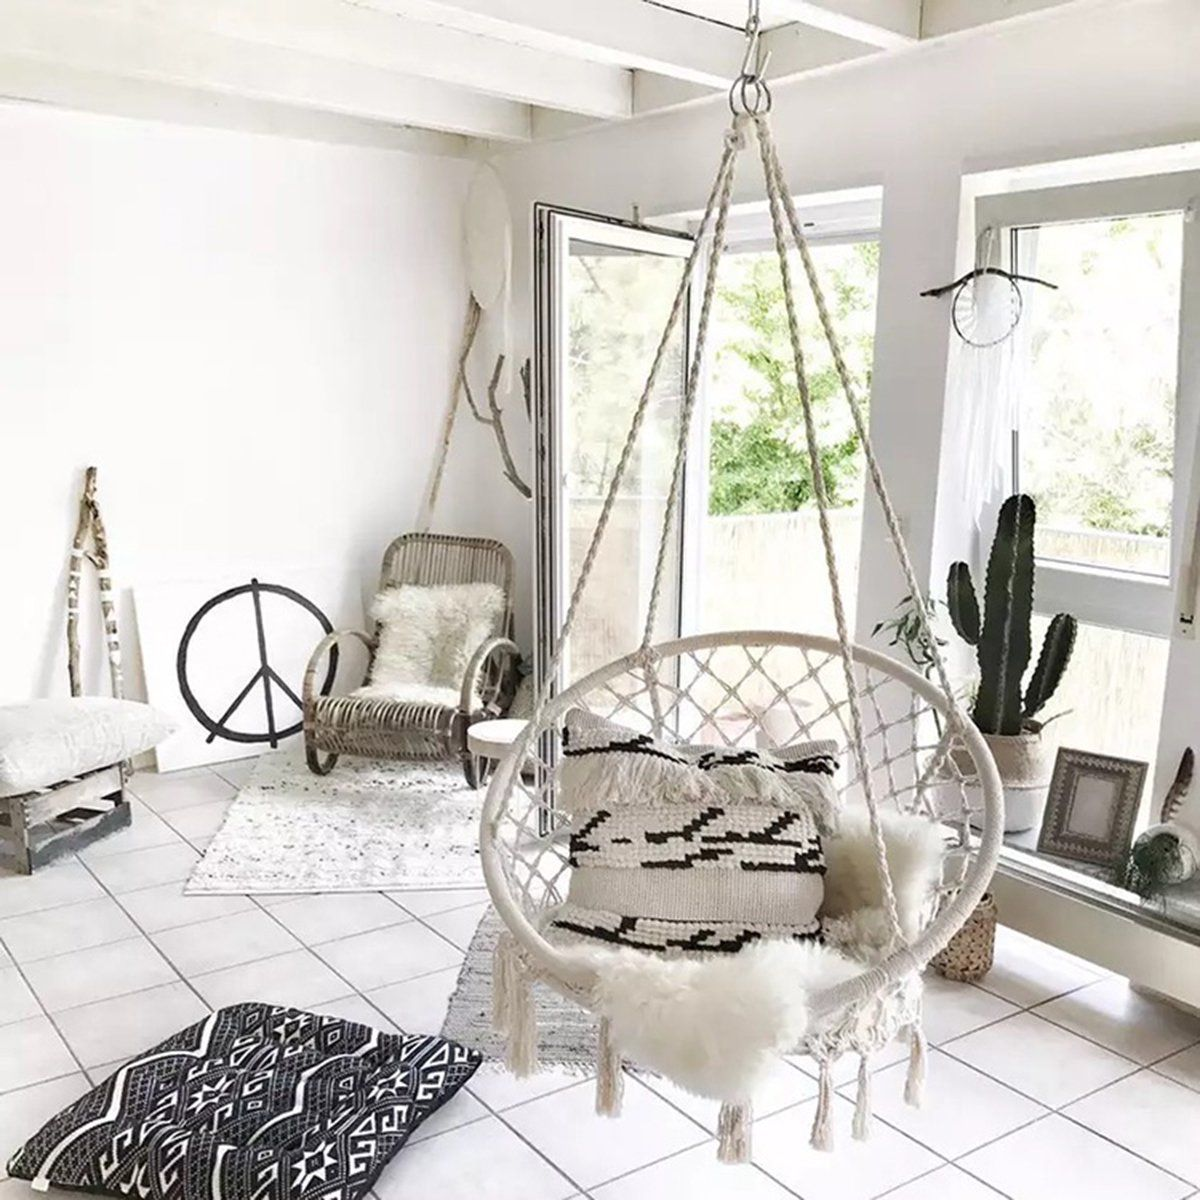 Hanging Hammock Chair Seat Mesh Woven Rope Macrame Wooden Bar Chair Swing Outdoor Home Garden Patio Install Tool Home Decor Christmas Gift Walmart Com In 2020 Swinging Chair Indoor Swing